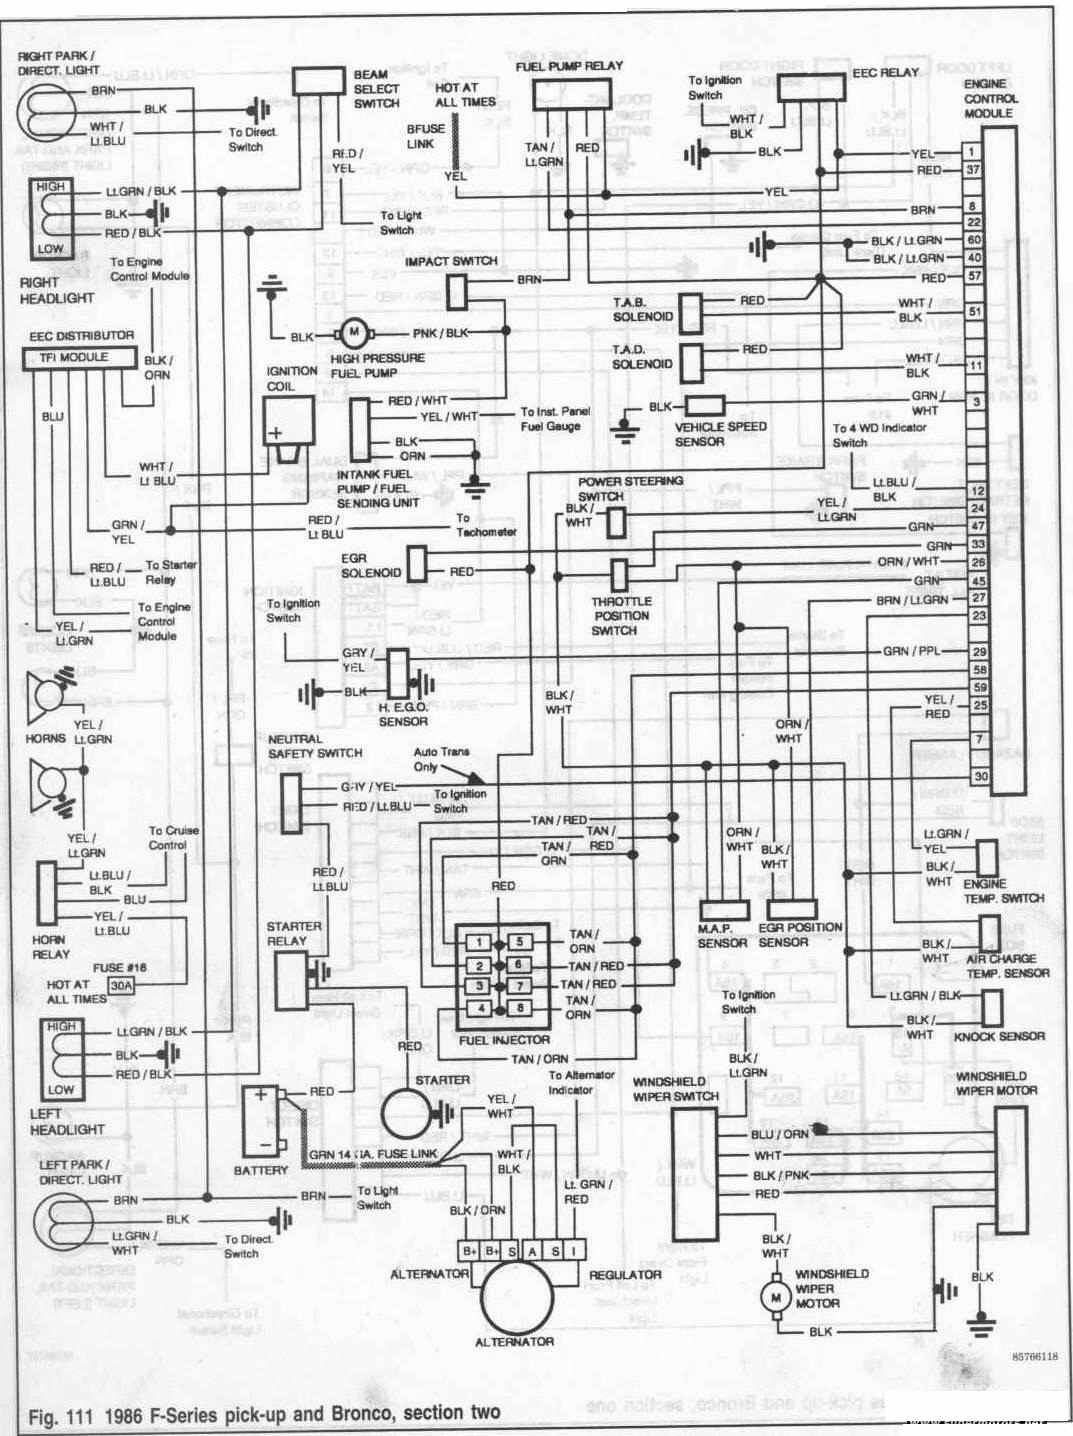 engine control wiring diagram nissan engine control wiring diagram